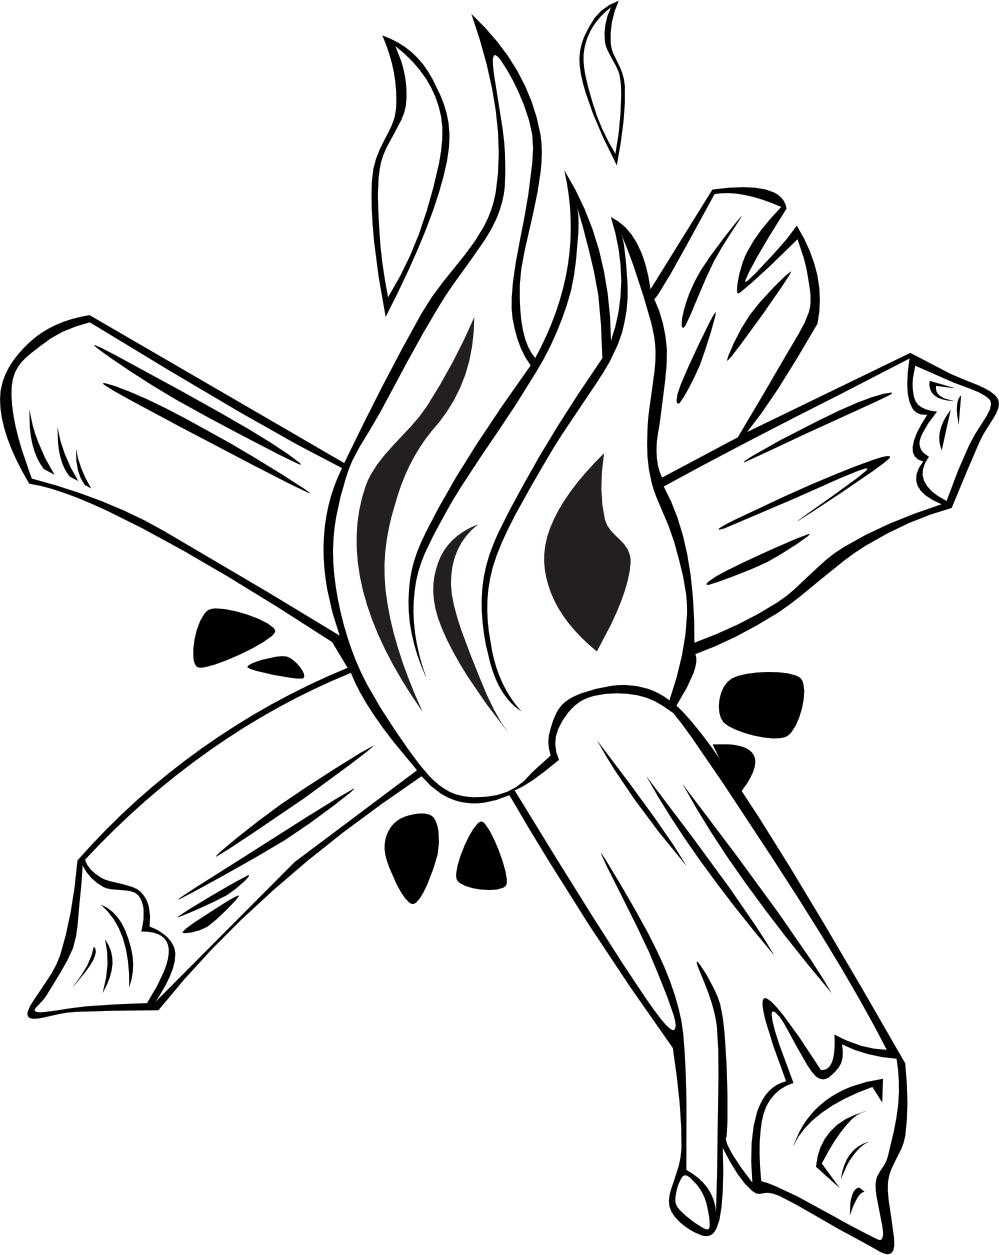 Drawn campire transparent Clipart White black%20and%20white%20campfire%20clipart Images And